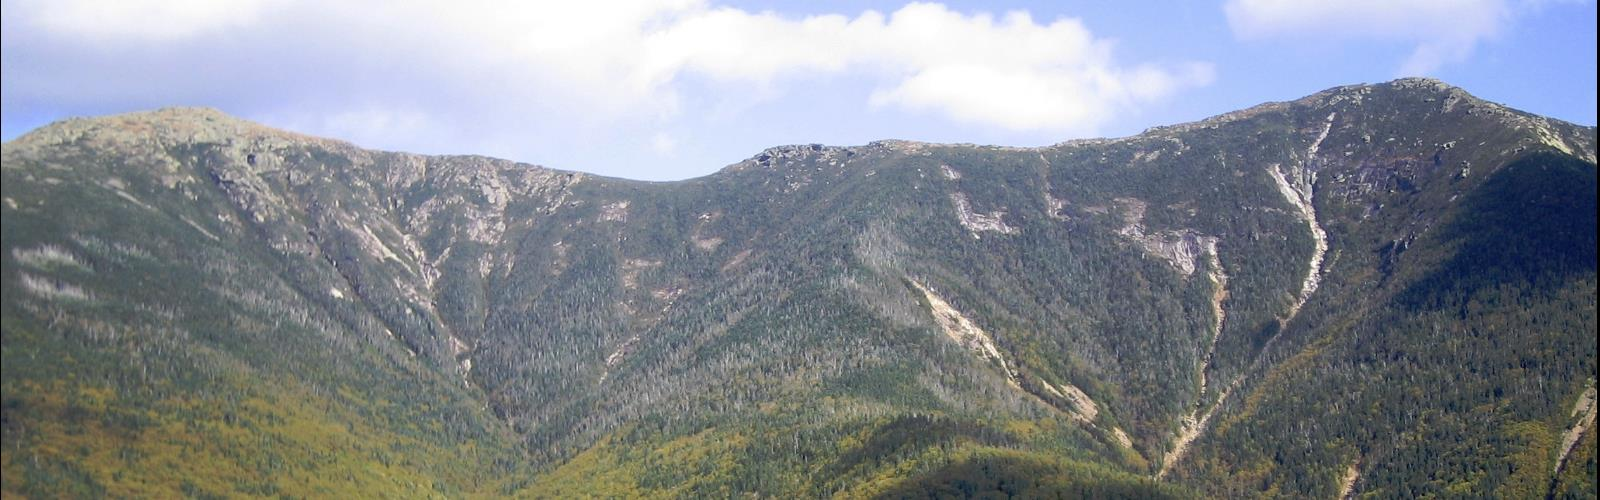 Mount Lafayette, New Hampshire - Hiking